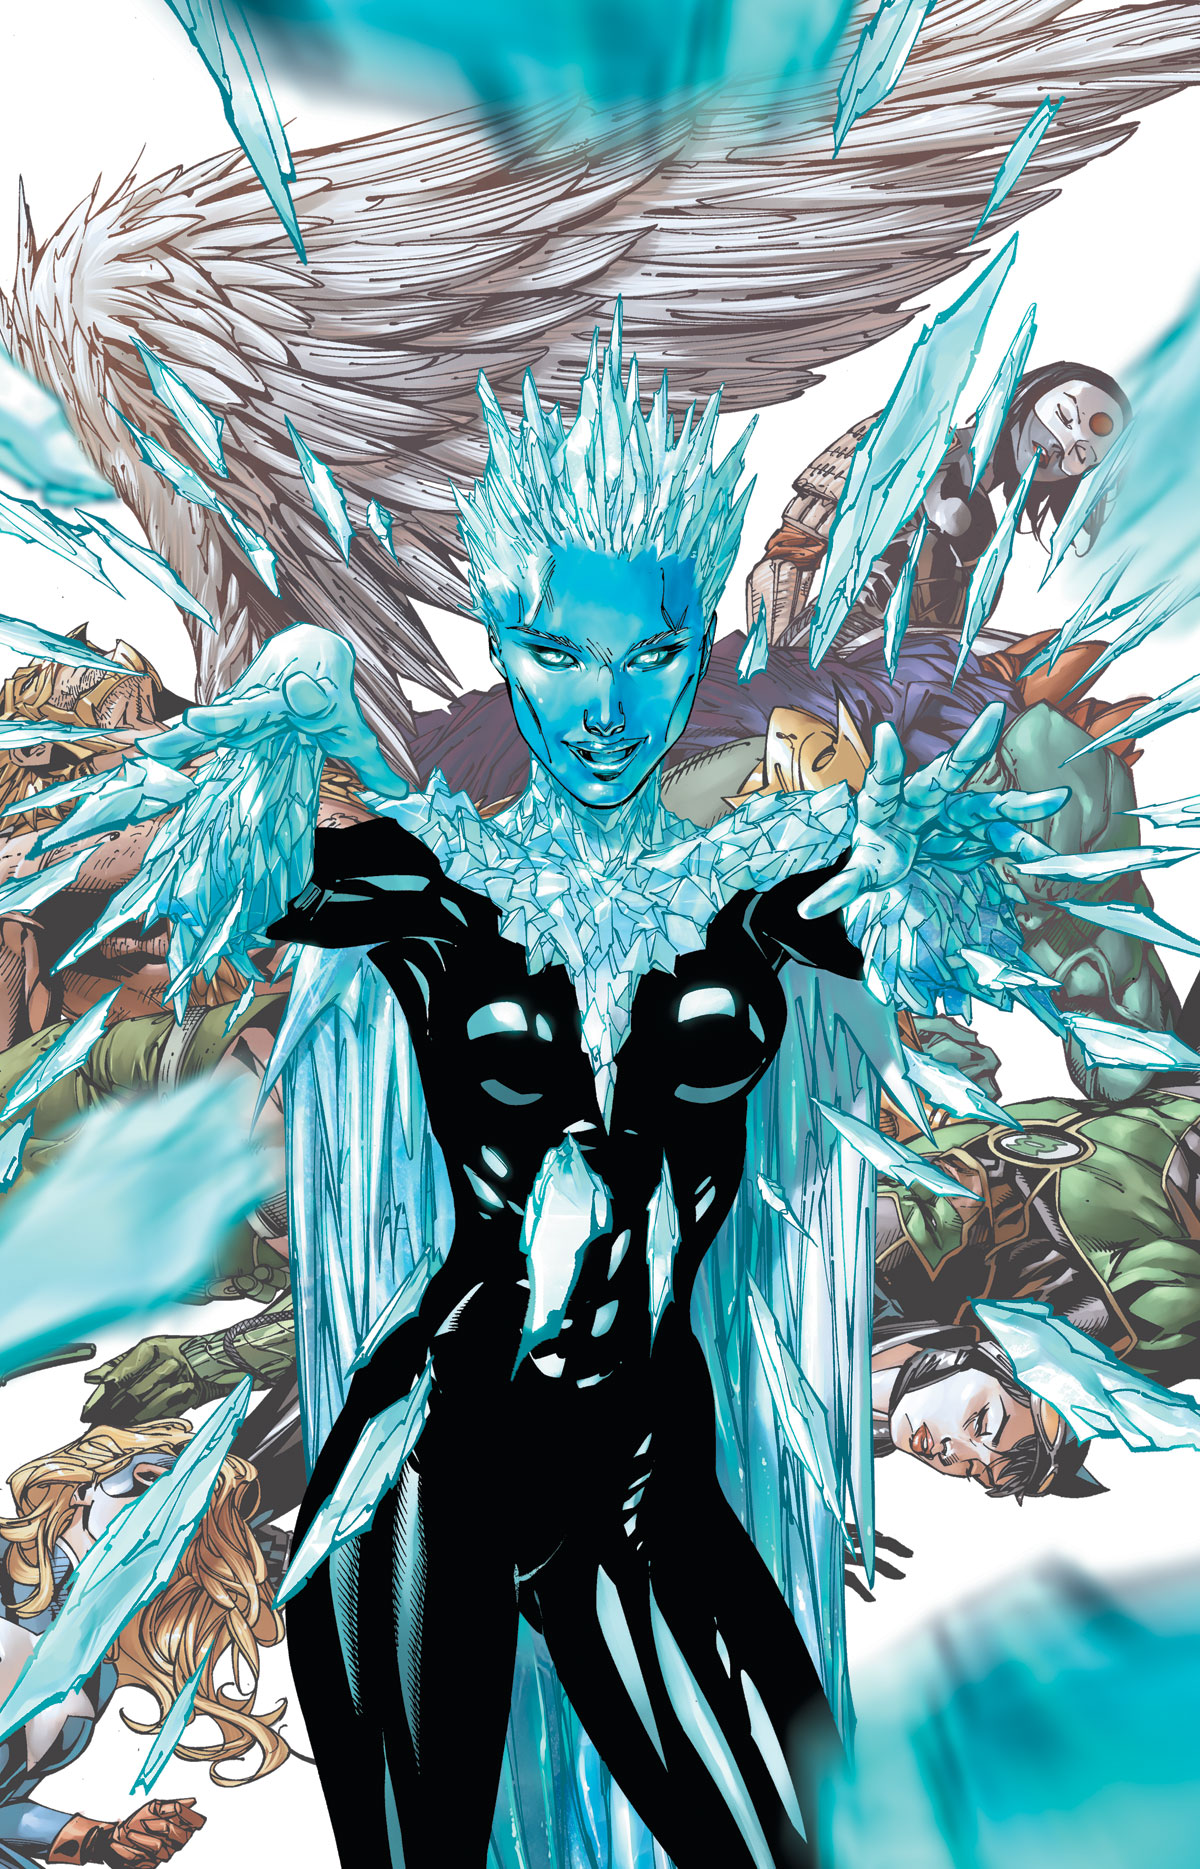 Justice League of America #7.2 Killer Frost cover by Tony S. Daniel and Matt Banning